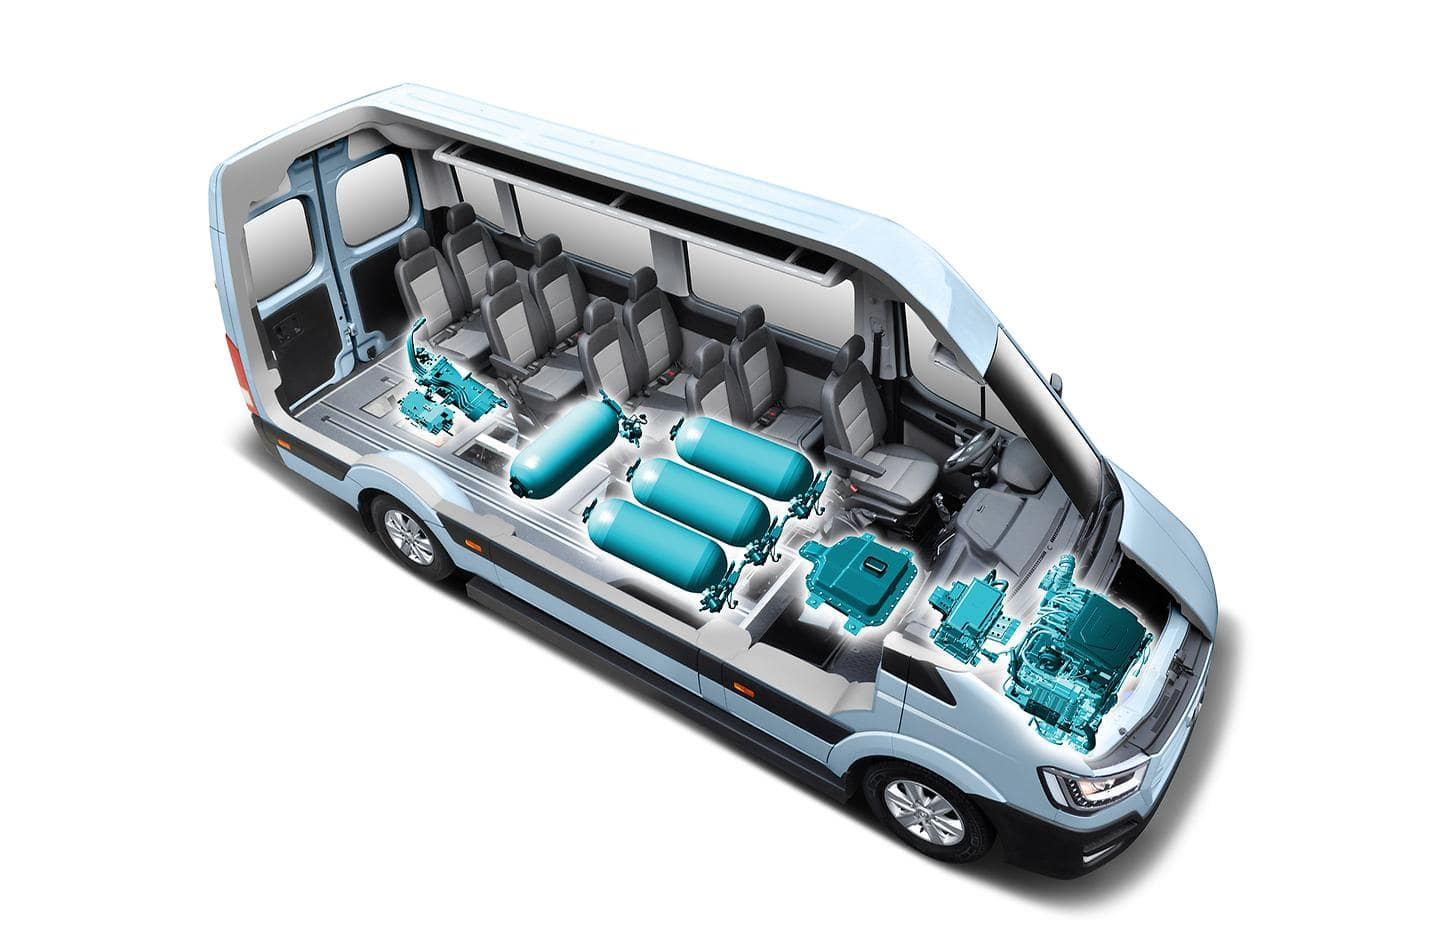 Hyundai Motor to Unveil H350 Fuel Cell Concept at the 2016 IAA Commercial Vehicle Show in Hanover (2)